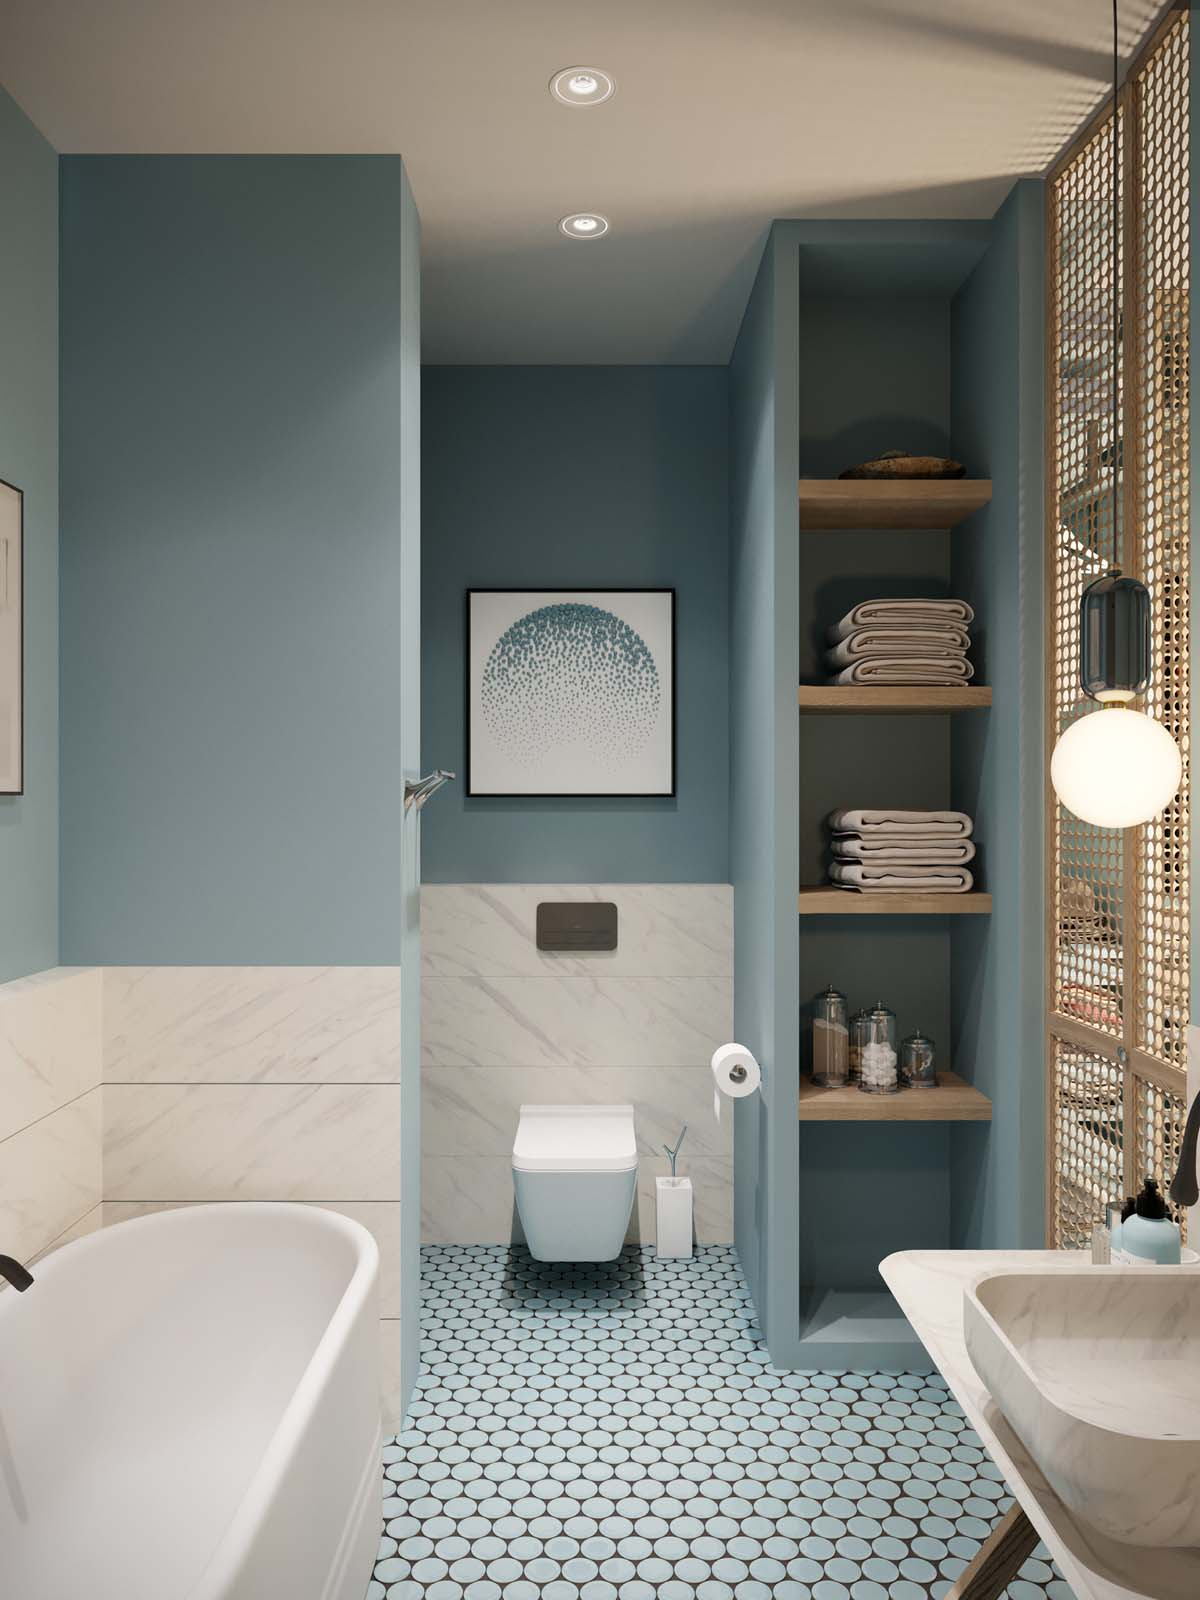 Soak Badkamer A Luxurious Home Interior With Pretty, Muted Pastel Colors